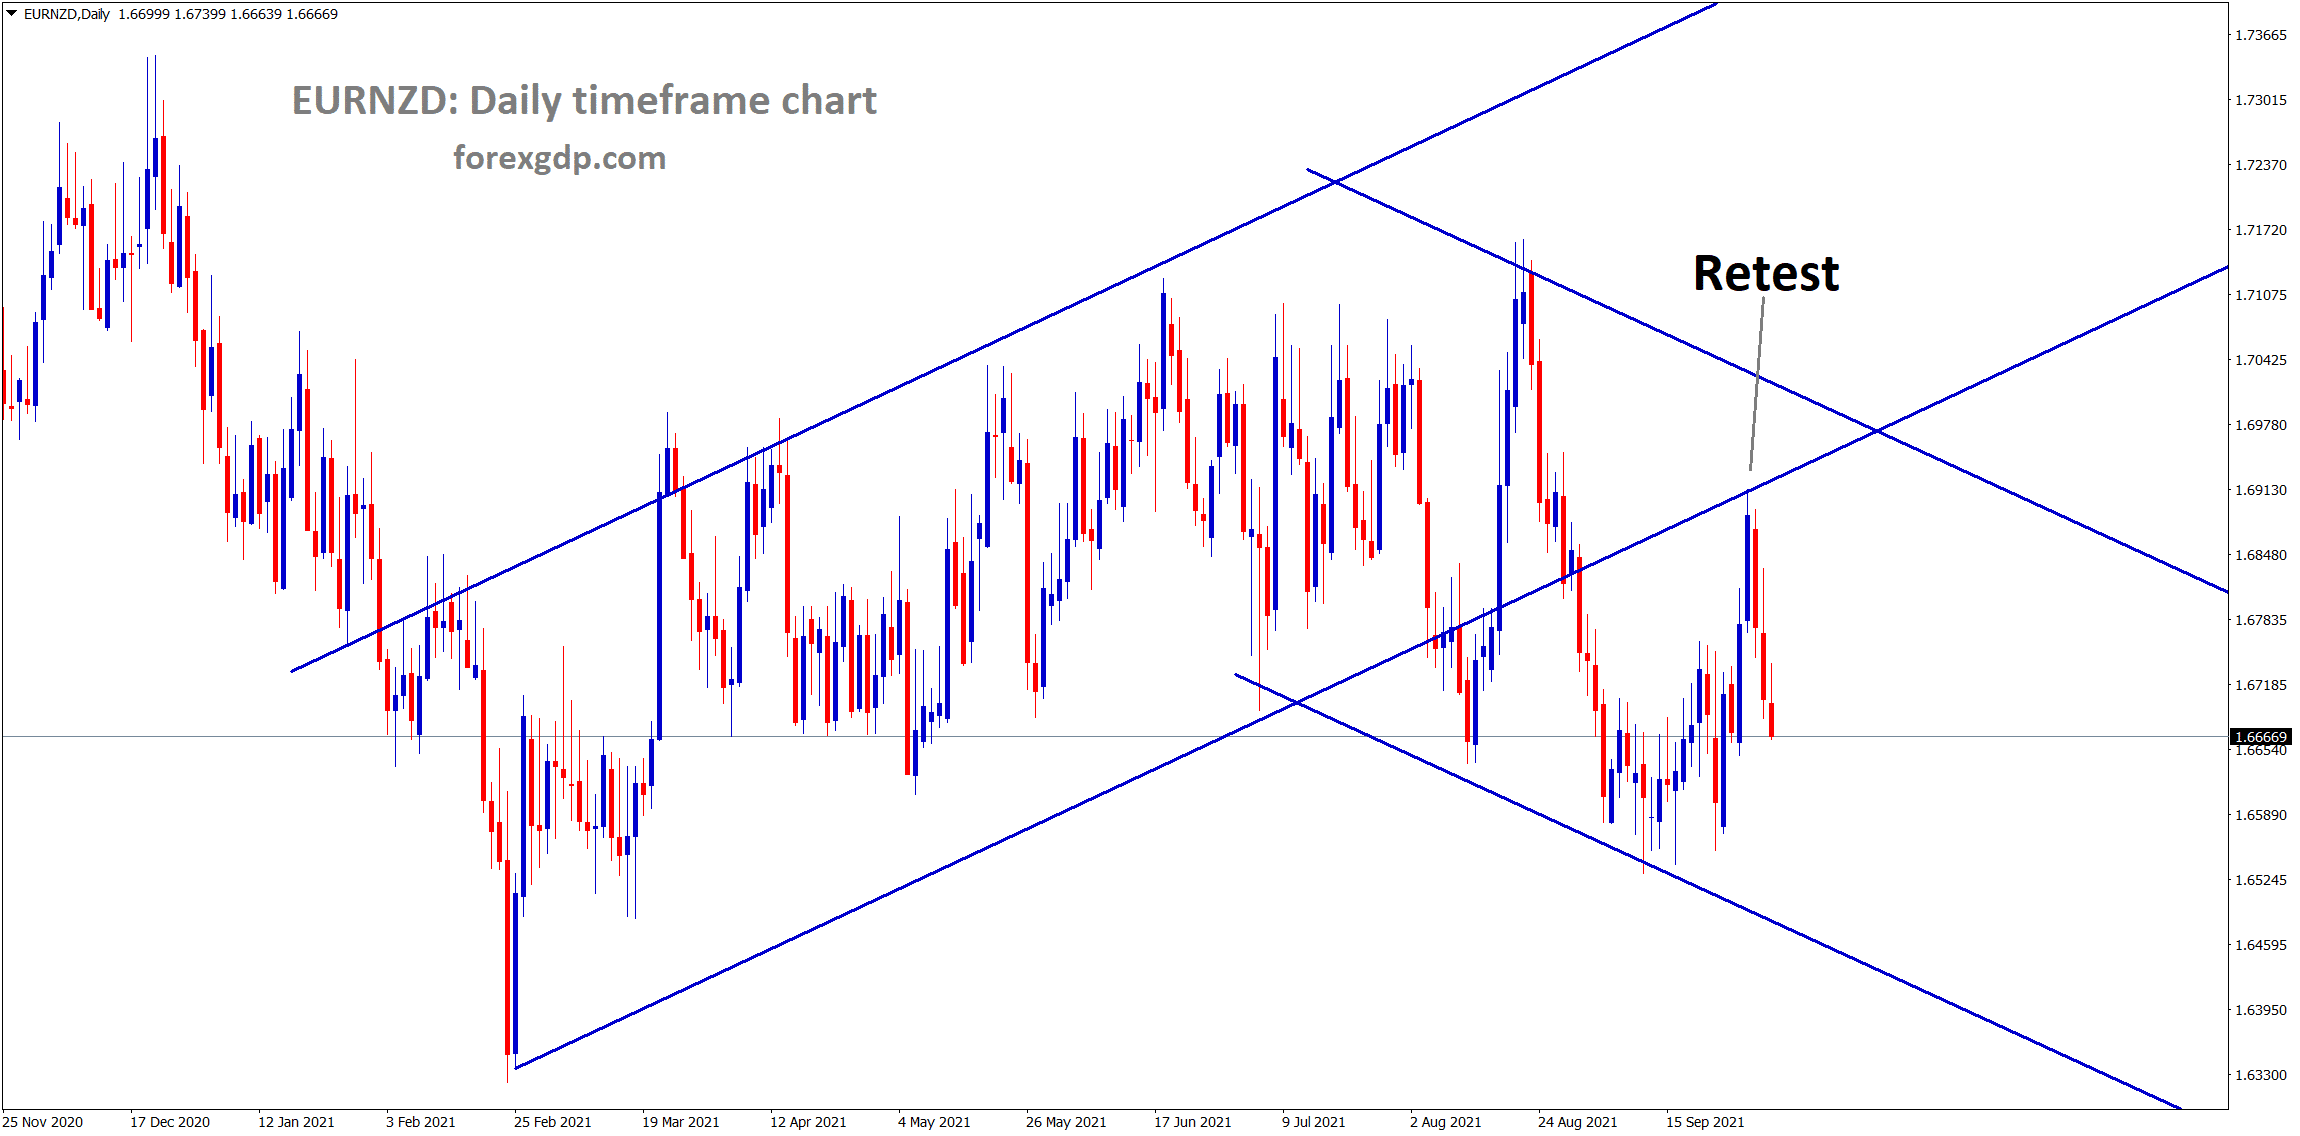 EURNZD is falling after retesting the broken ascending channel line